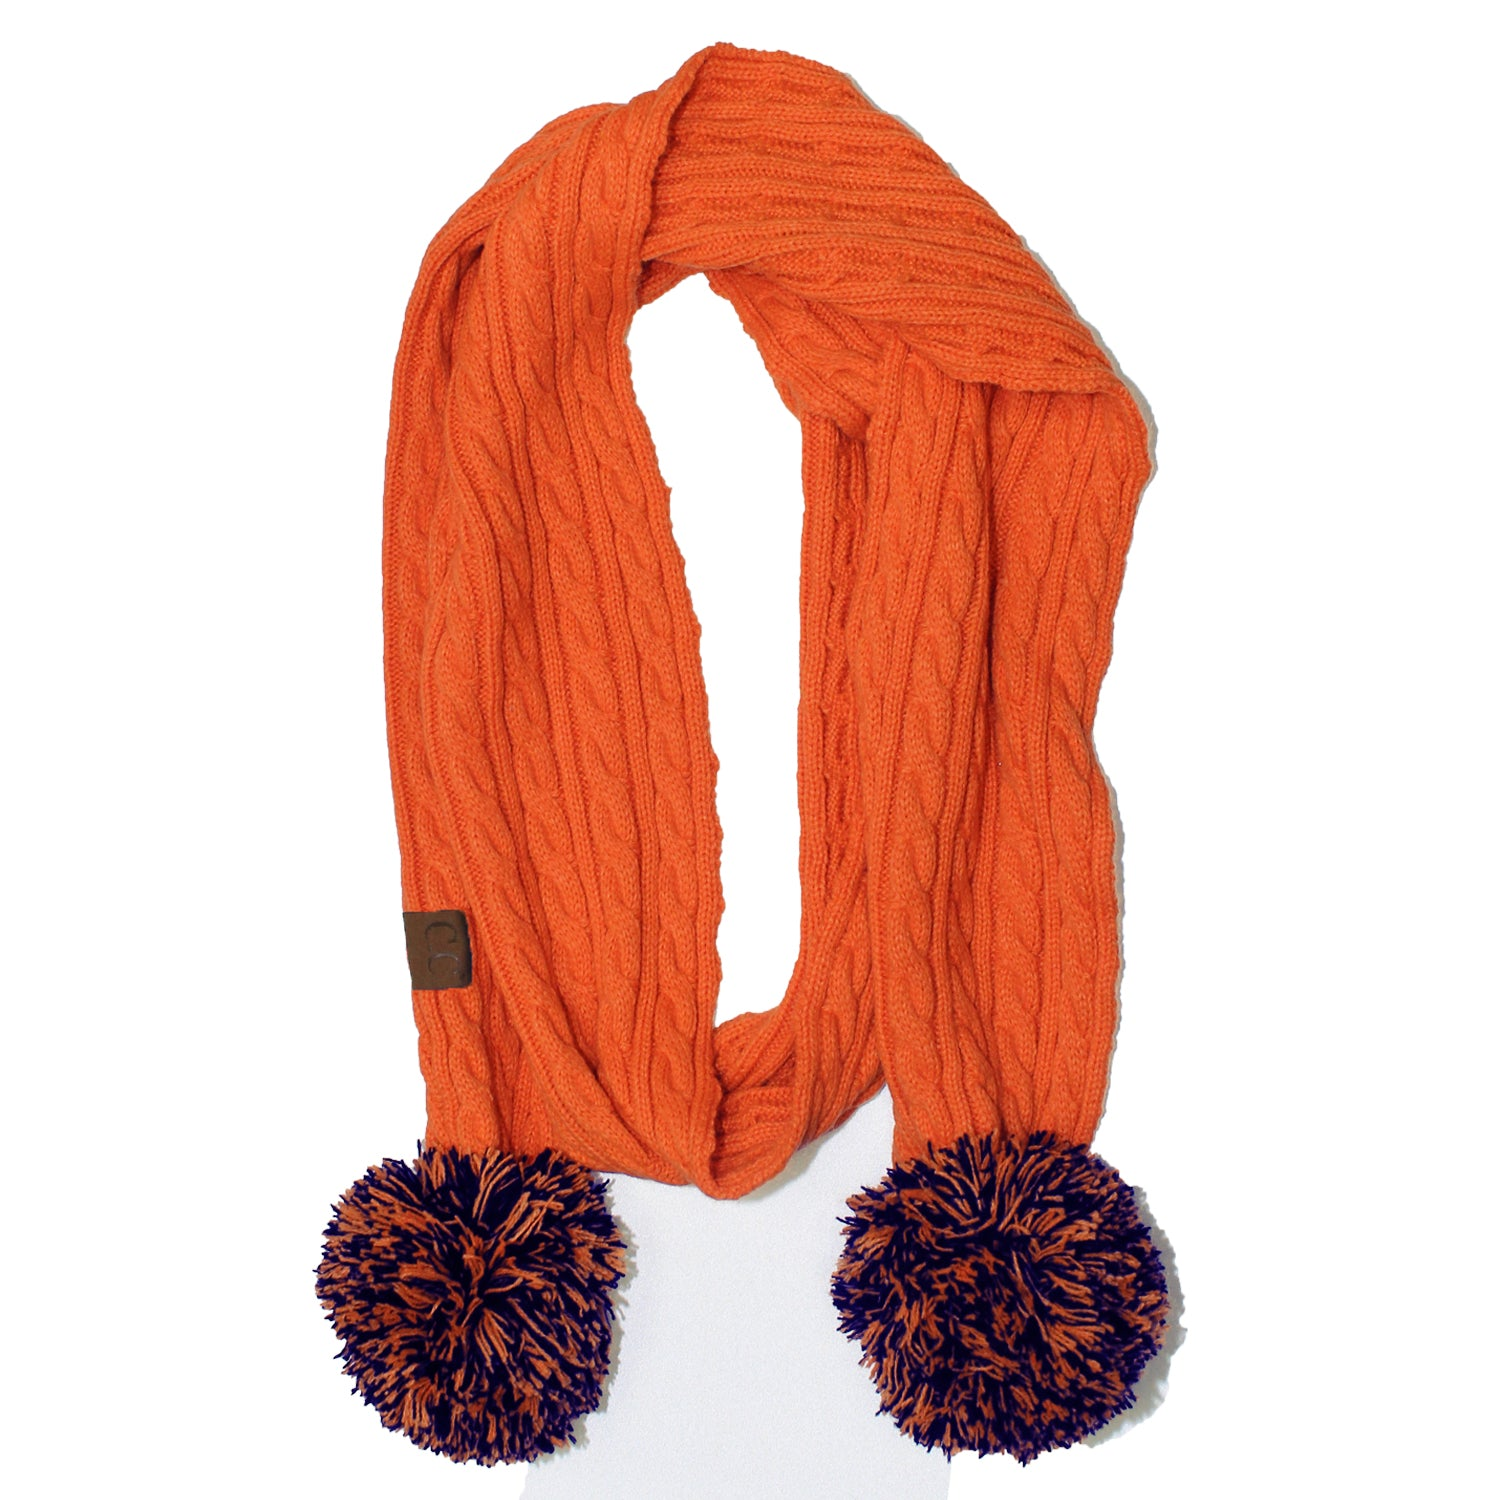 SK-56 Orange and Navy Team Pom-Pom Scarf